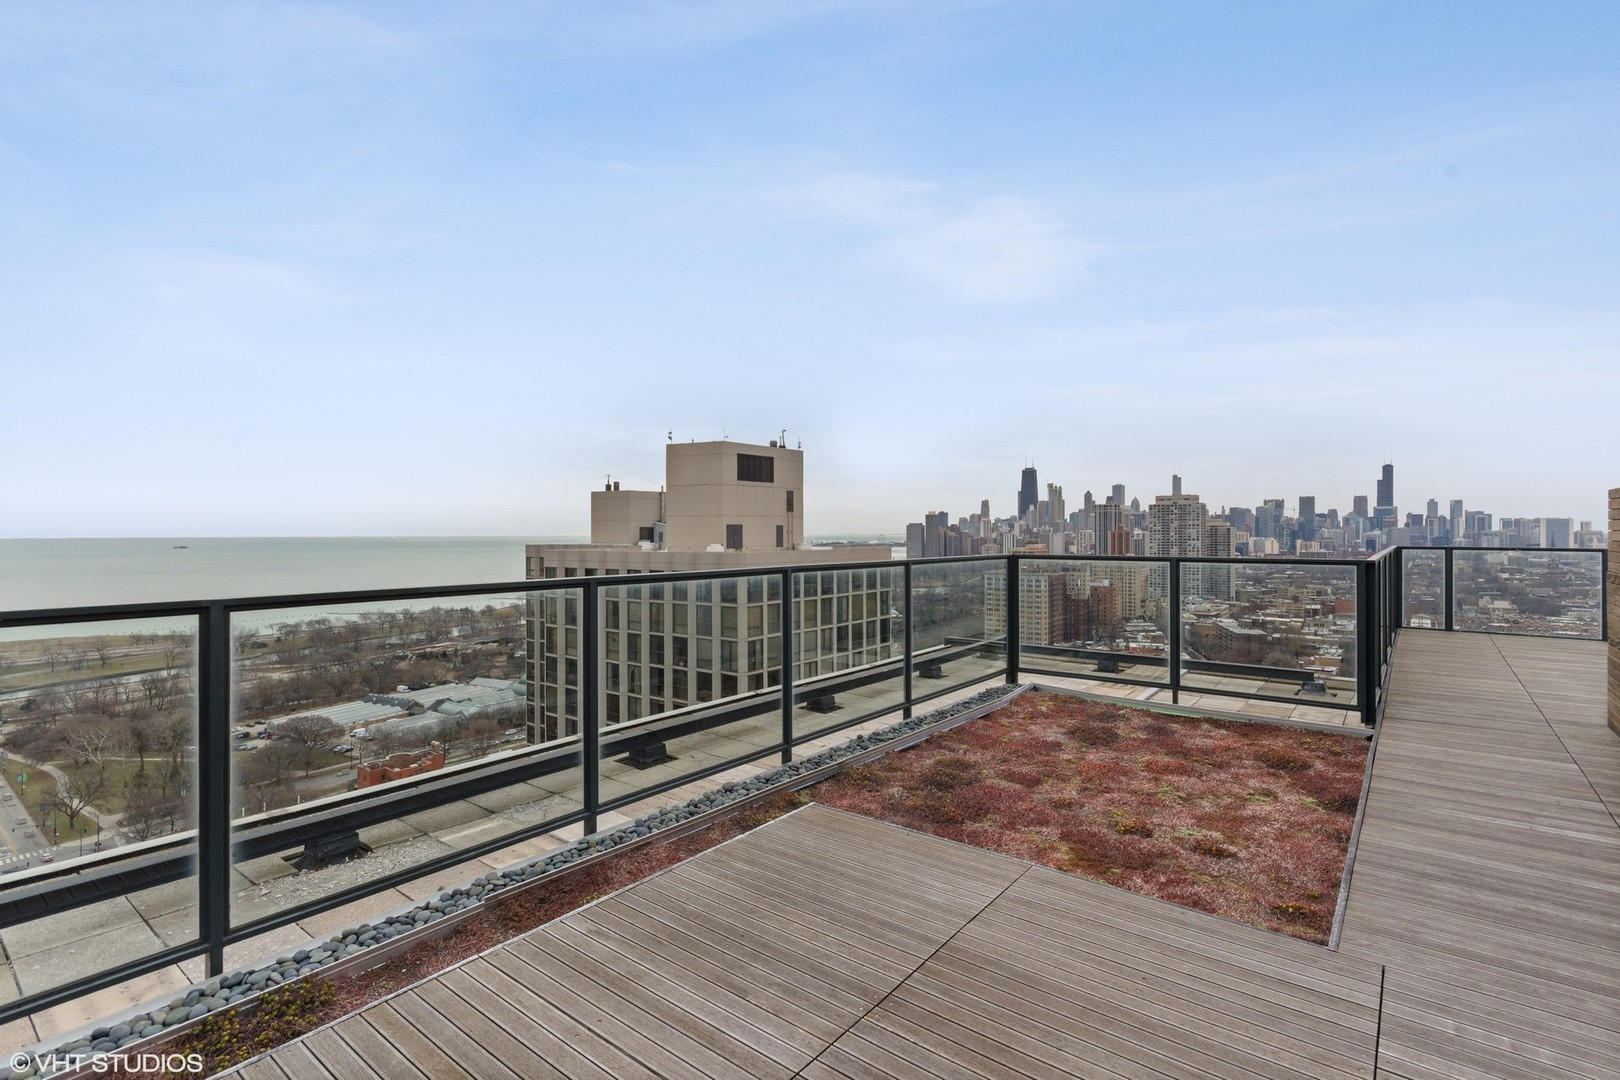 2400 N Lakeview Floor Plans: 2400 North Lakeview Avenue 2403, Chicago, Illinois